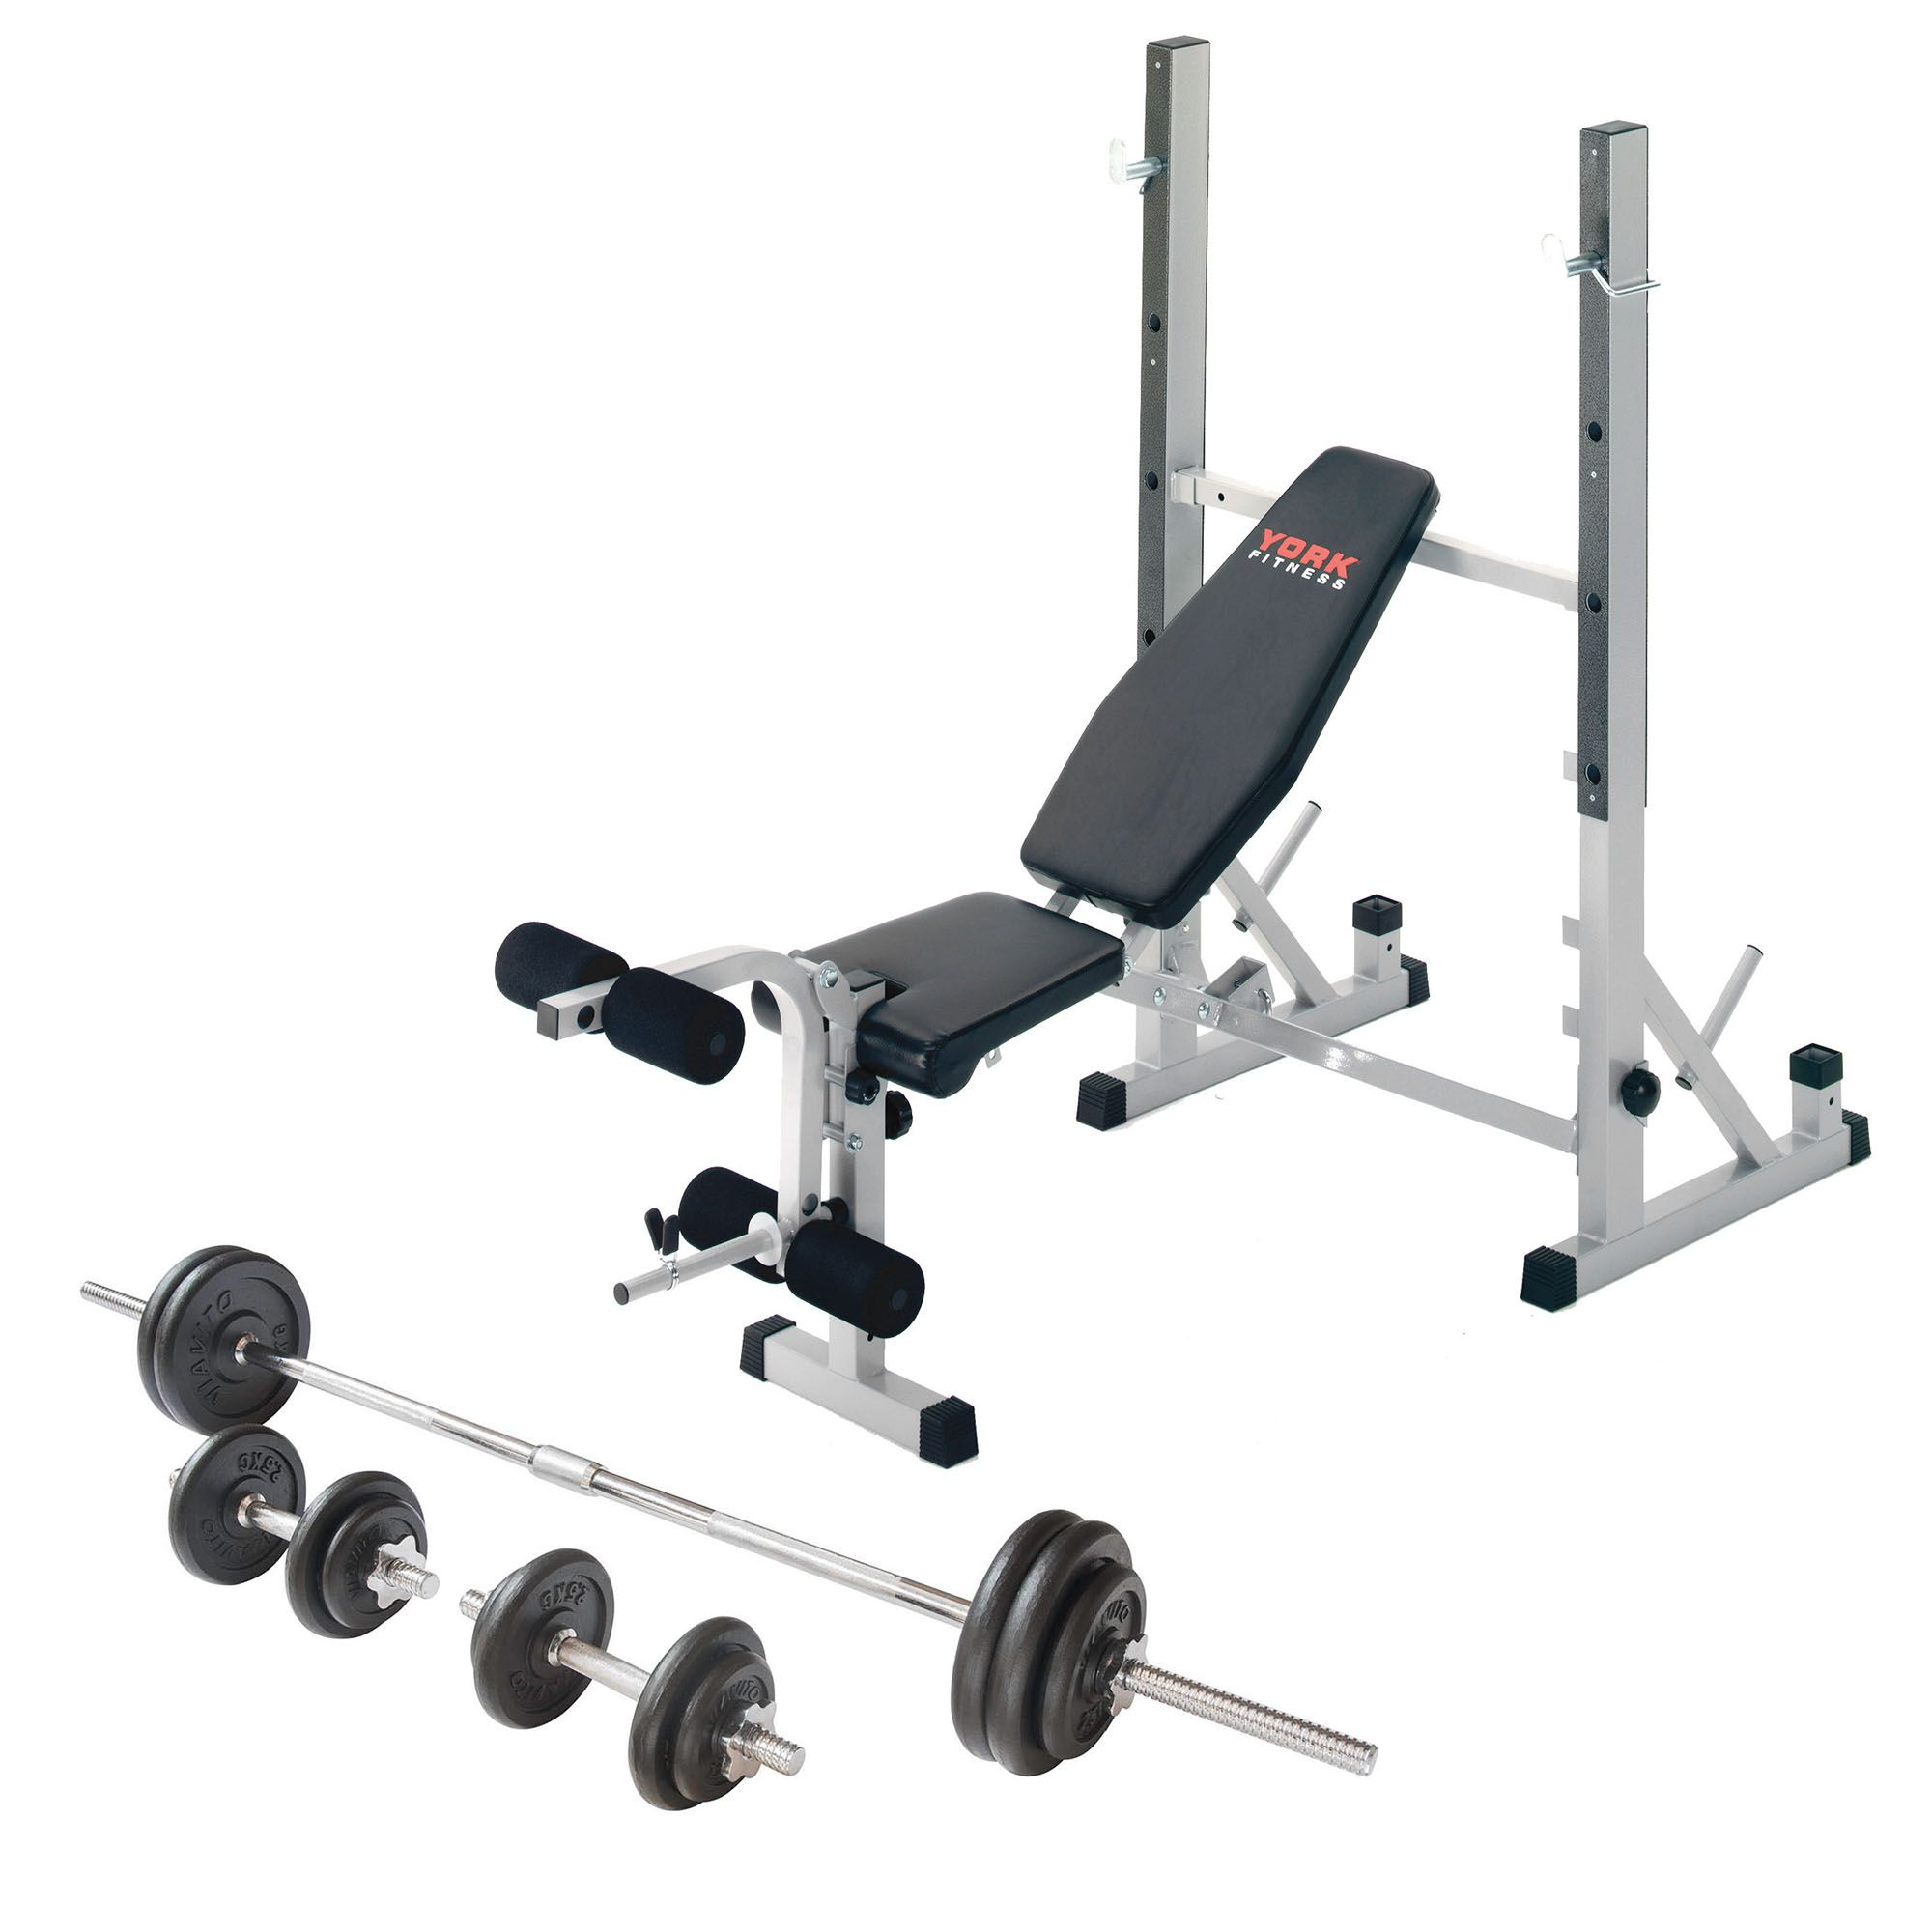 York b540 folding weight bench and viavito 50kg cast iron weight set Bench and weight set